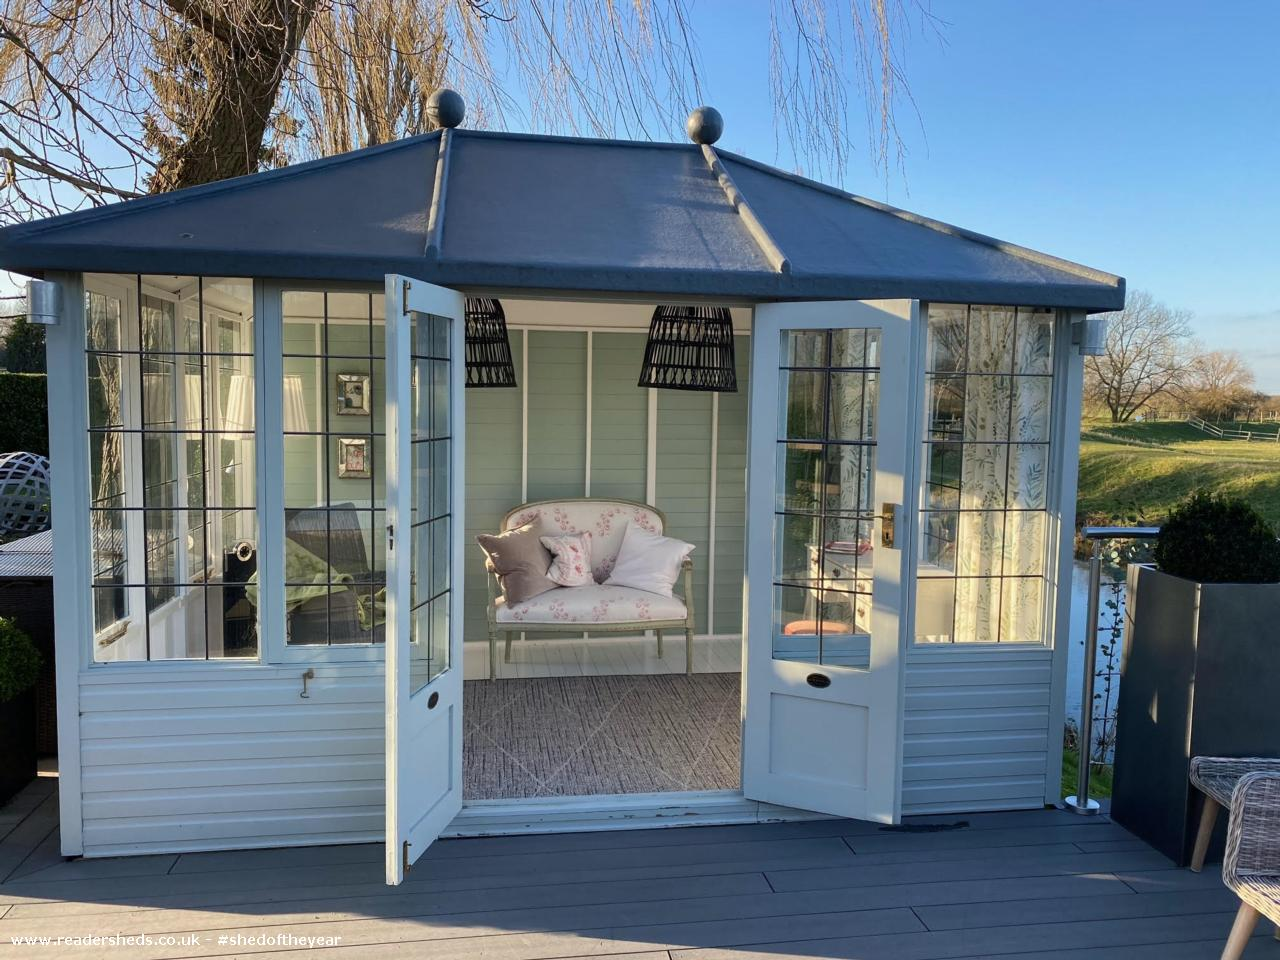 Photo of Riverside Summer House, entry to Shed of the year